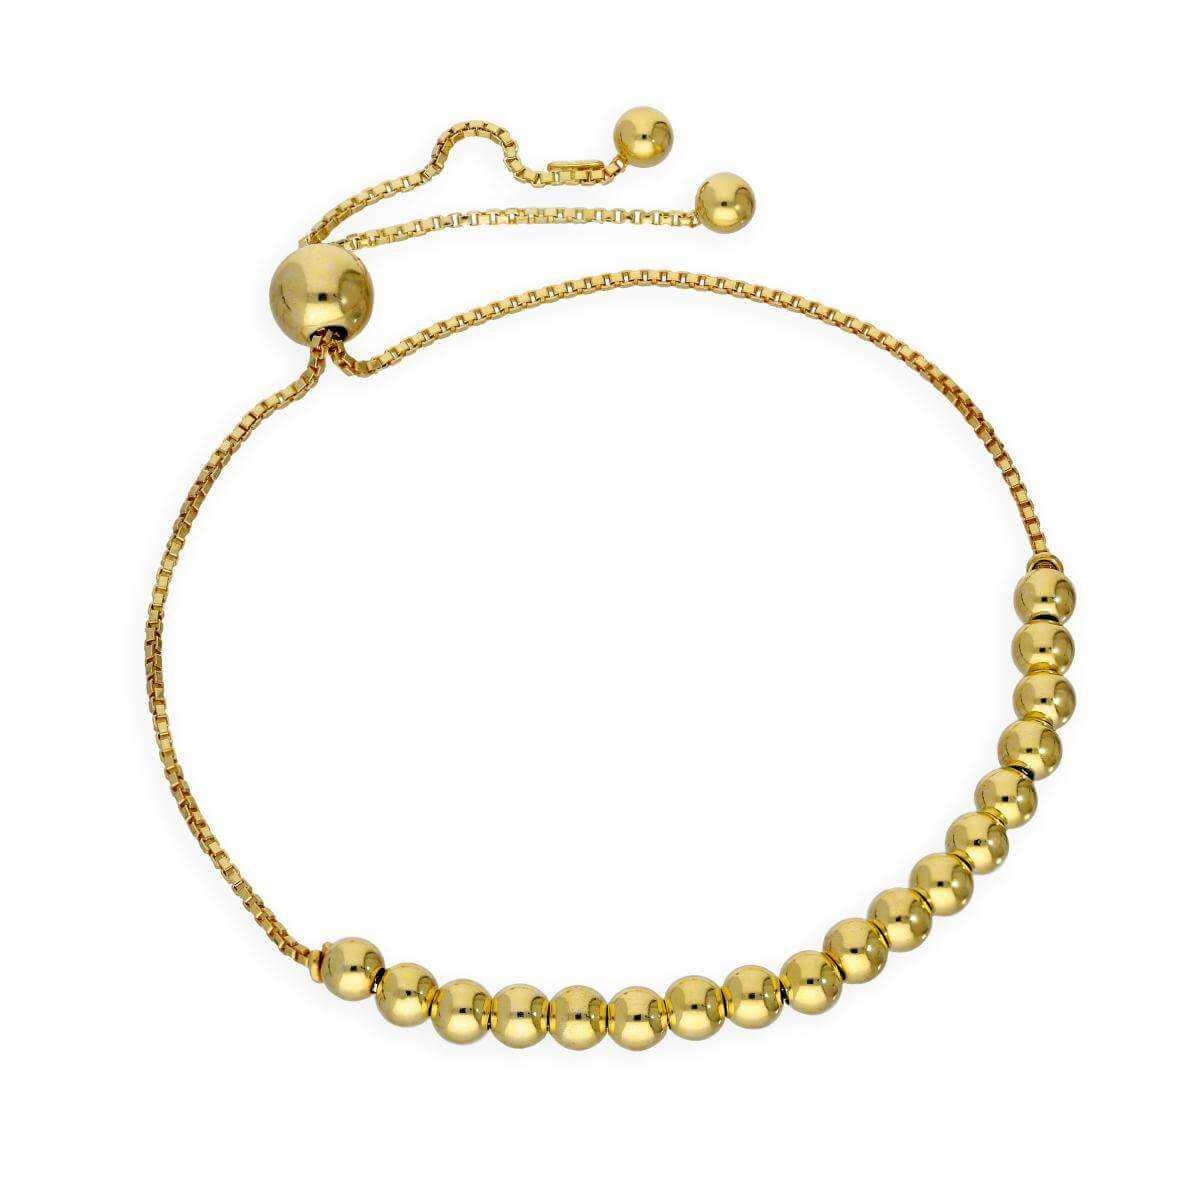 Gold Plated Sterling Silver Adjustable Bead Bracelet